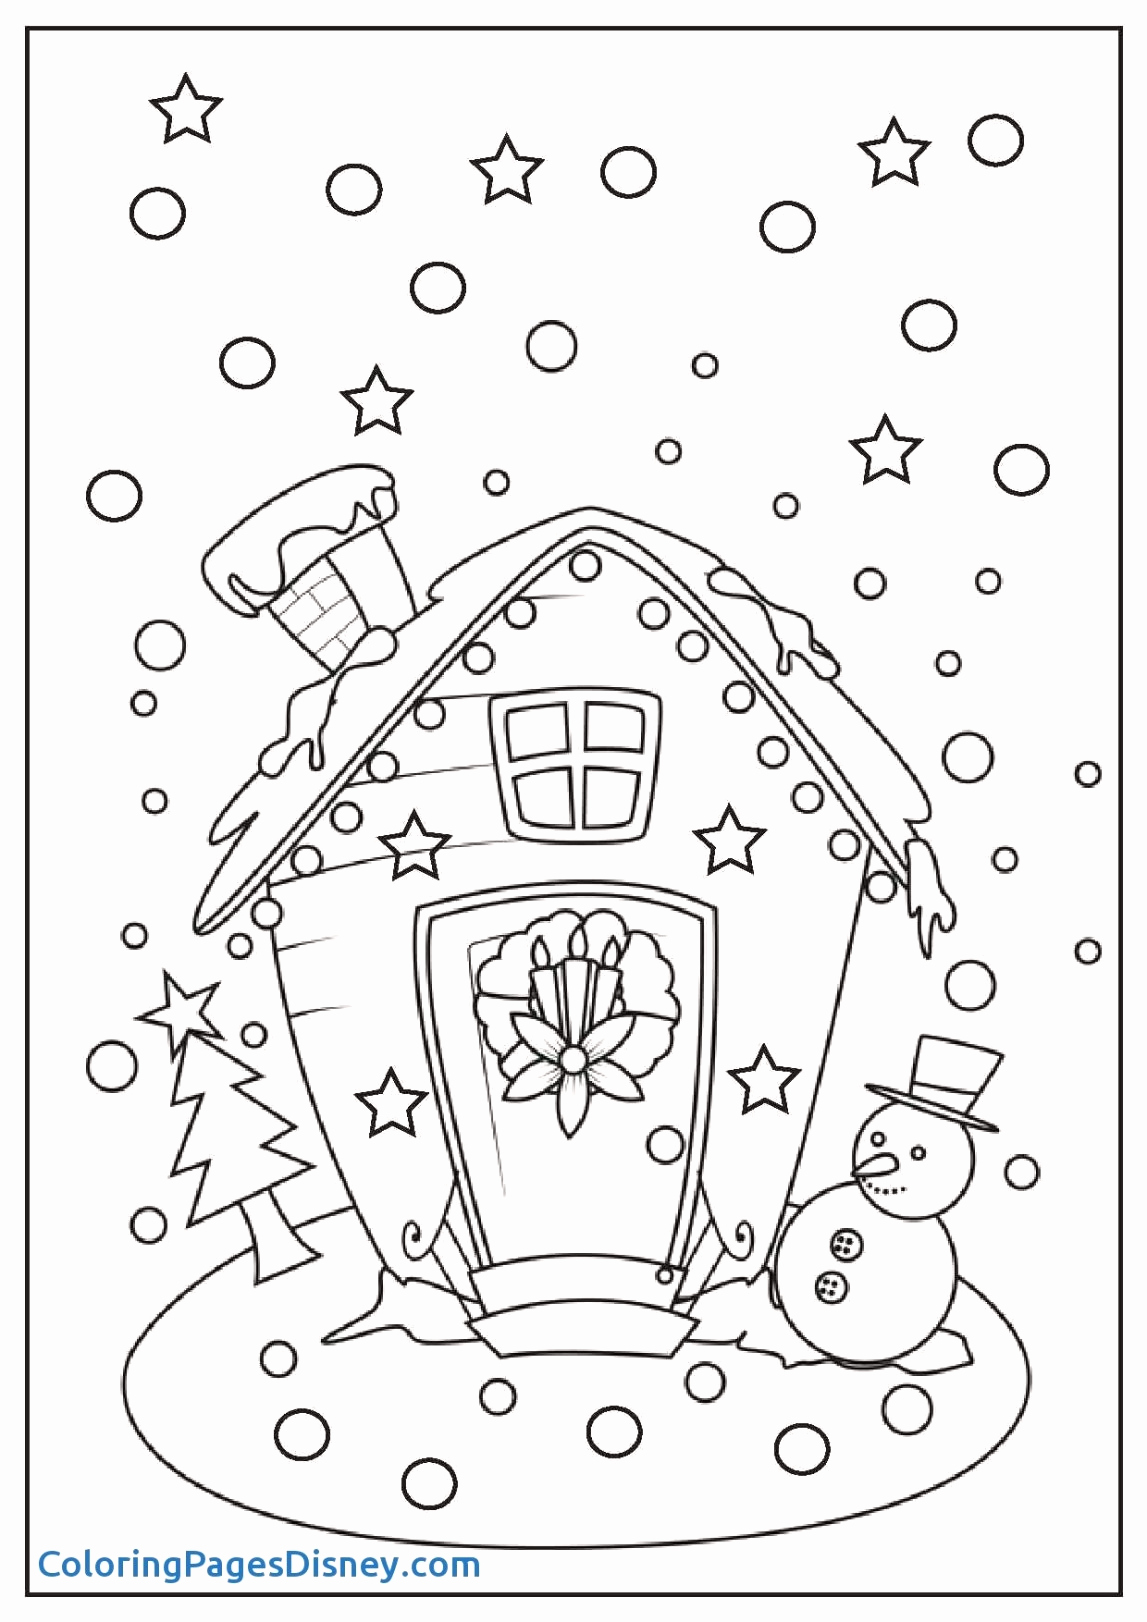 Christmas Coloring Pages Disney.Disney Christmas Coloring Pages For Adults With Walt